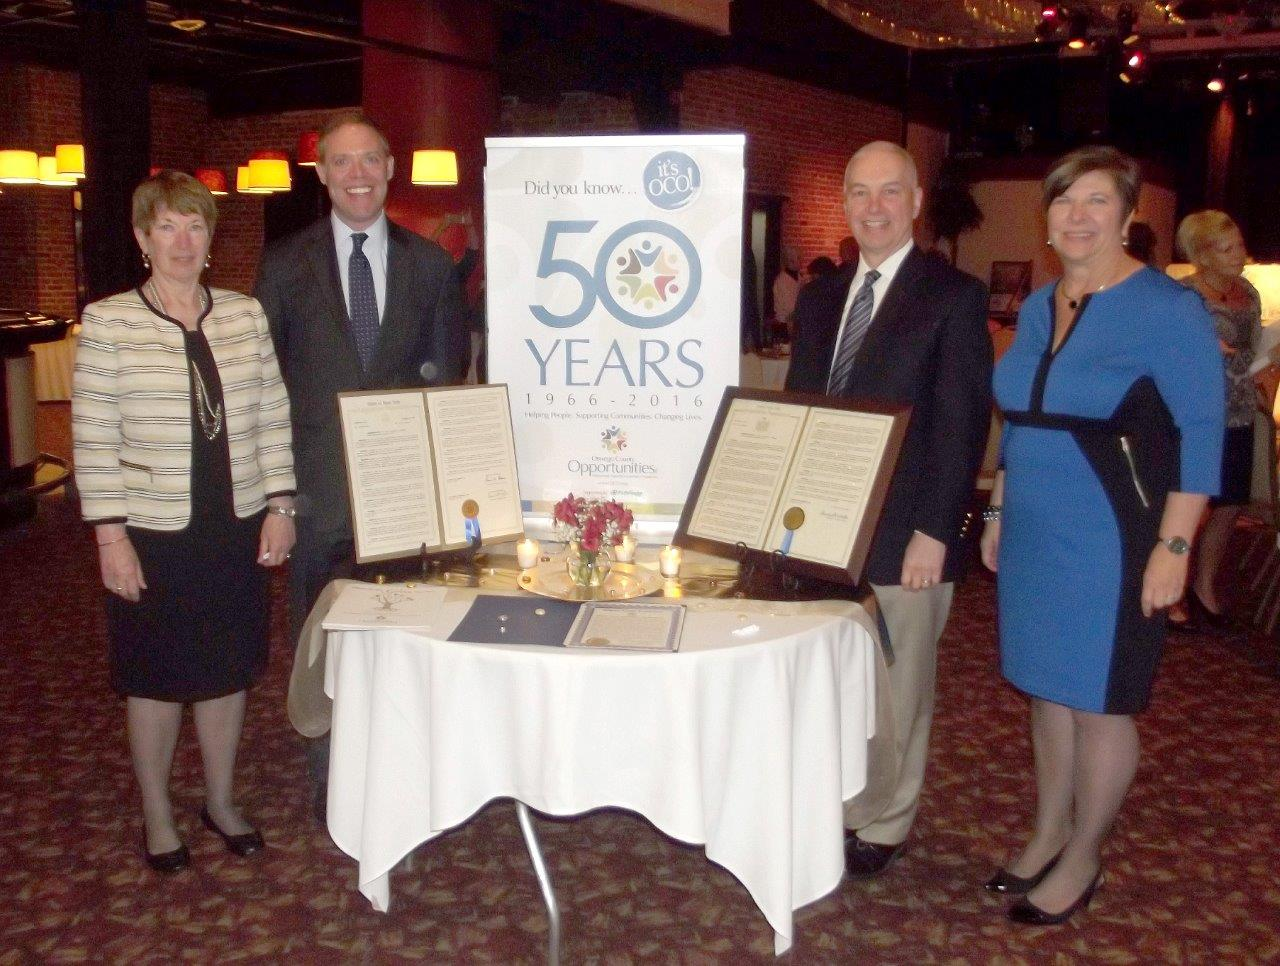 Assemblyman Will Barclay (R,C,I--Pulaski) and Assemblyman Bob Oaks (R,C—Macedon) recently congratulated Oswego County Opportunities on celebrating its 50th year anniversary at the organization's annua